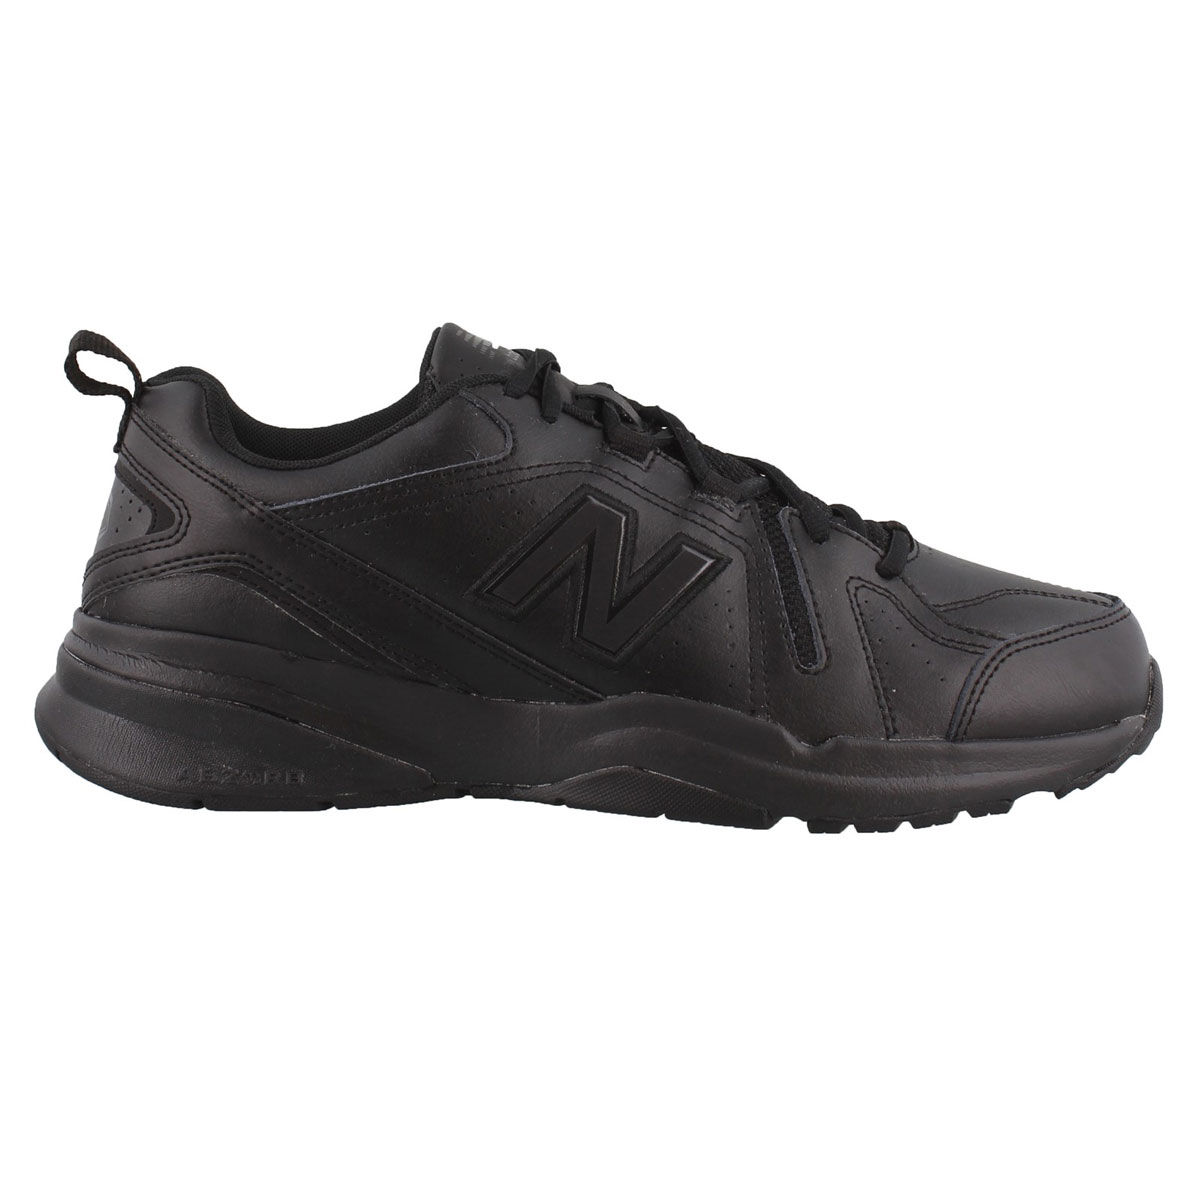 New Balance 608 V5 Mens Training Shoe